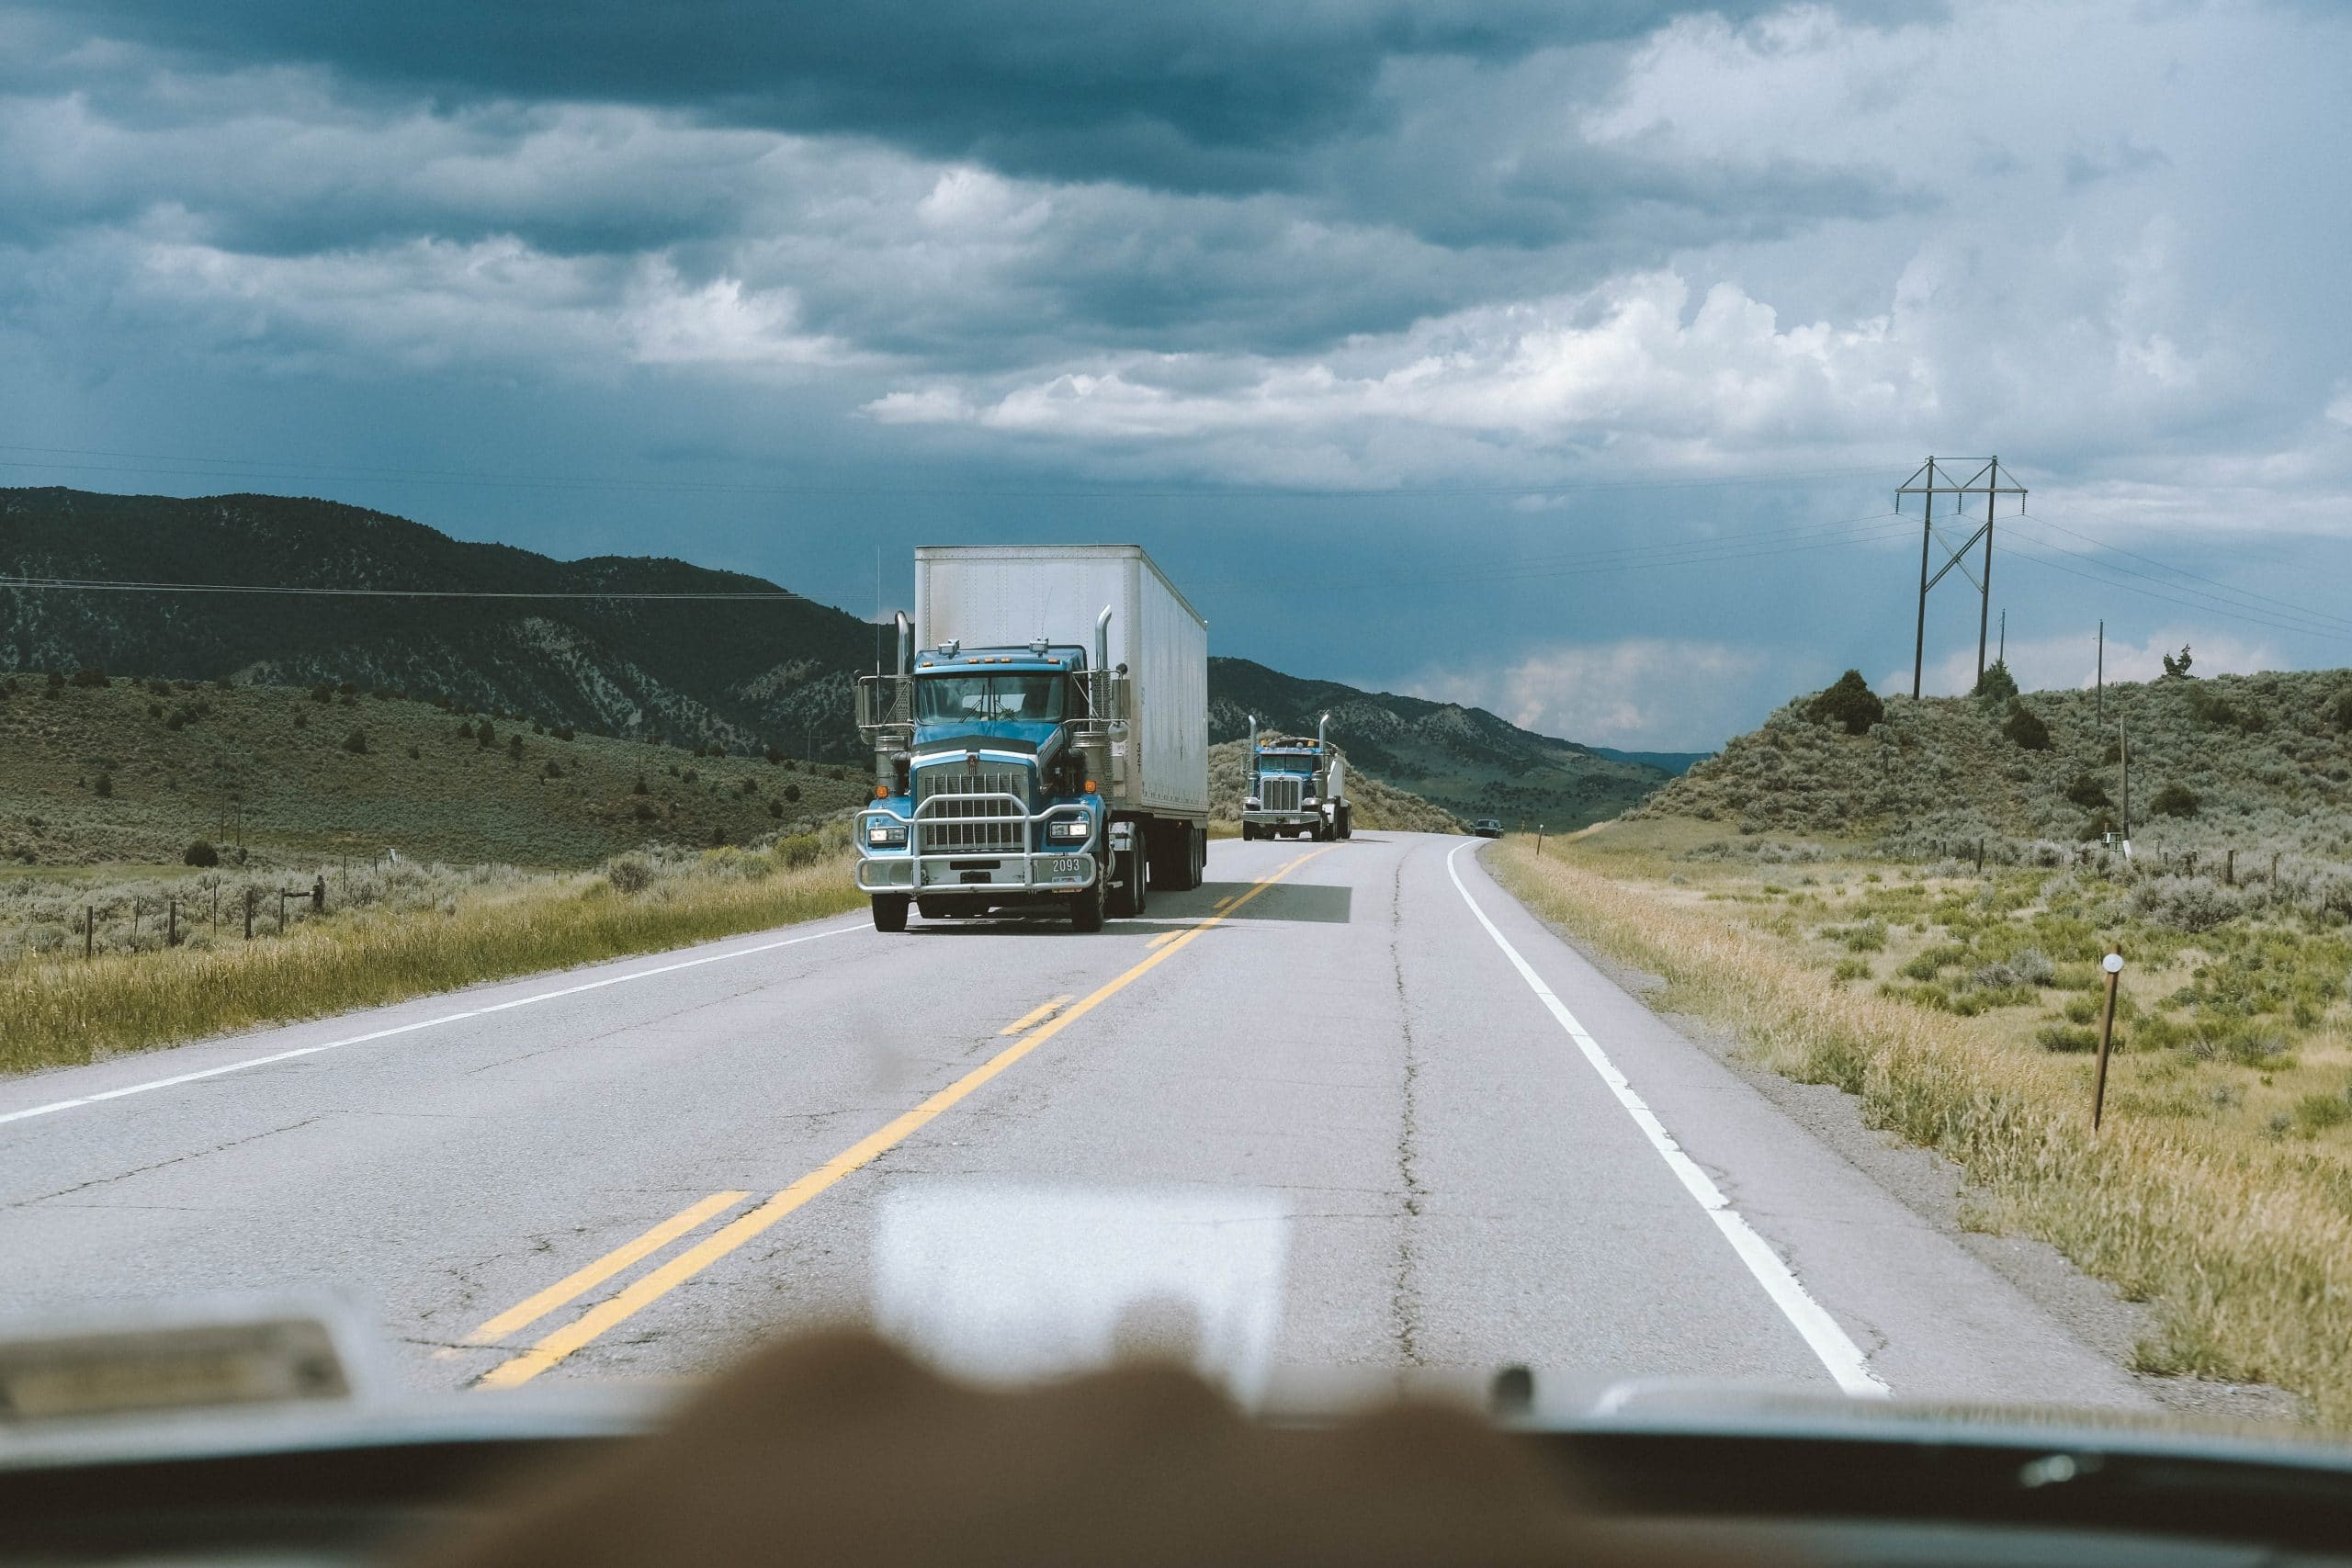 2 tractor trailers driving on single lane highway in midwest town